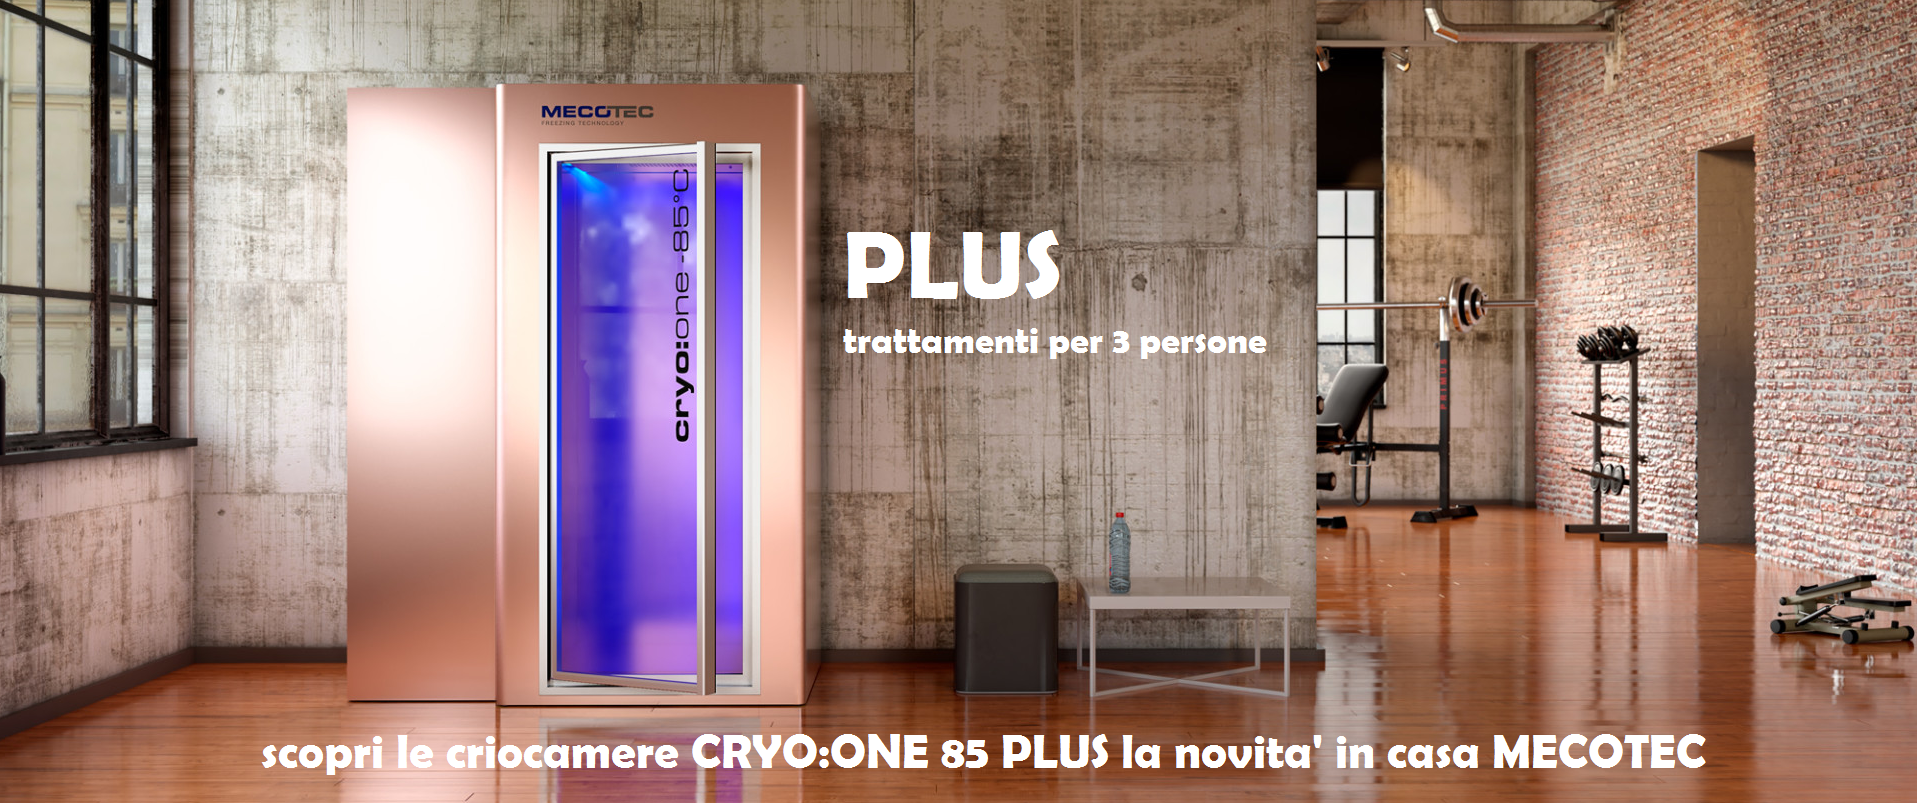 cryoone 85 plus